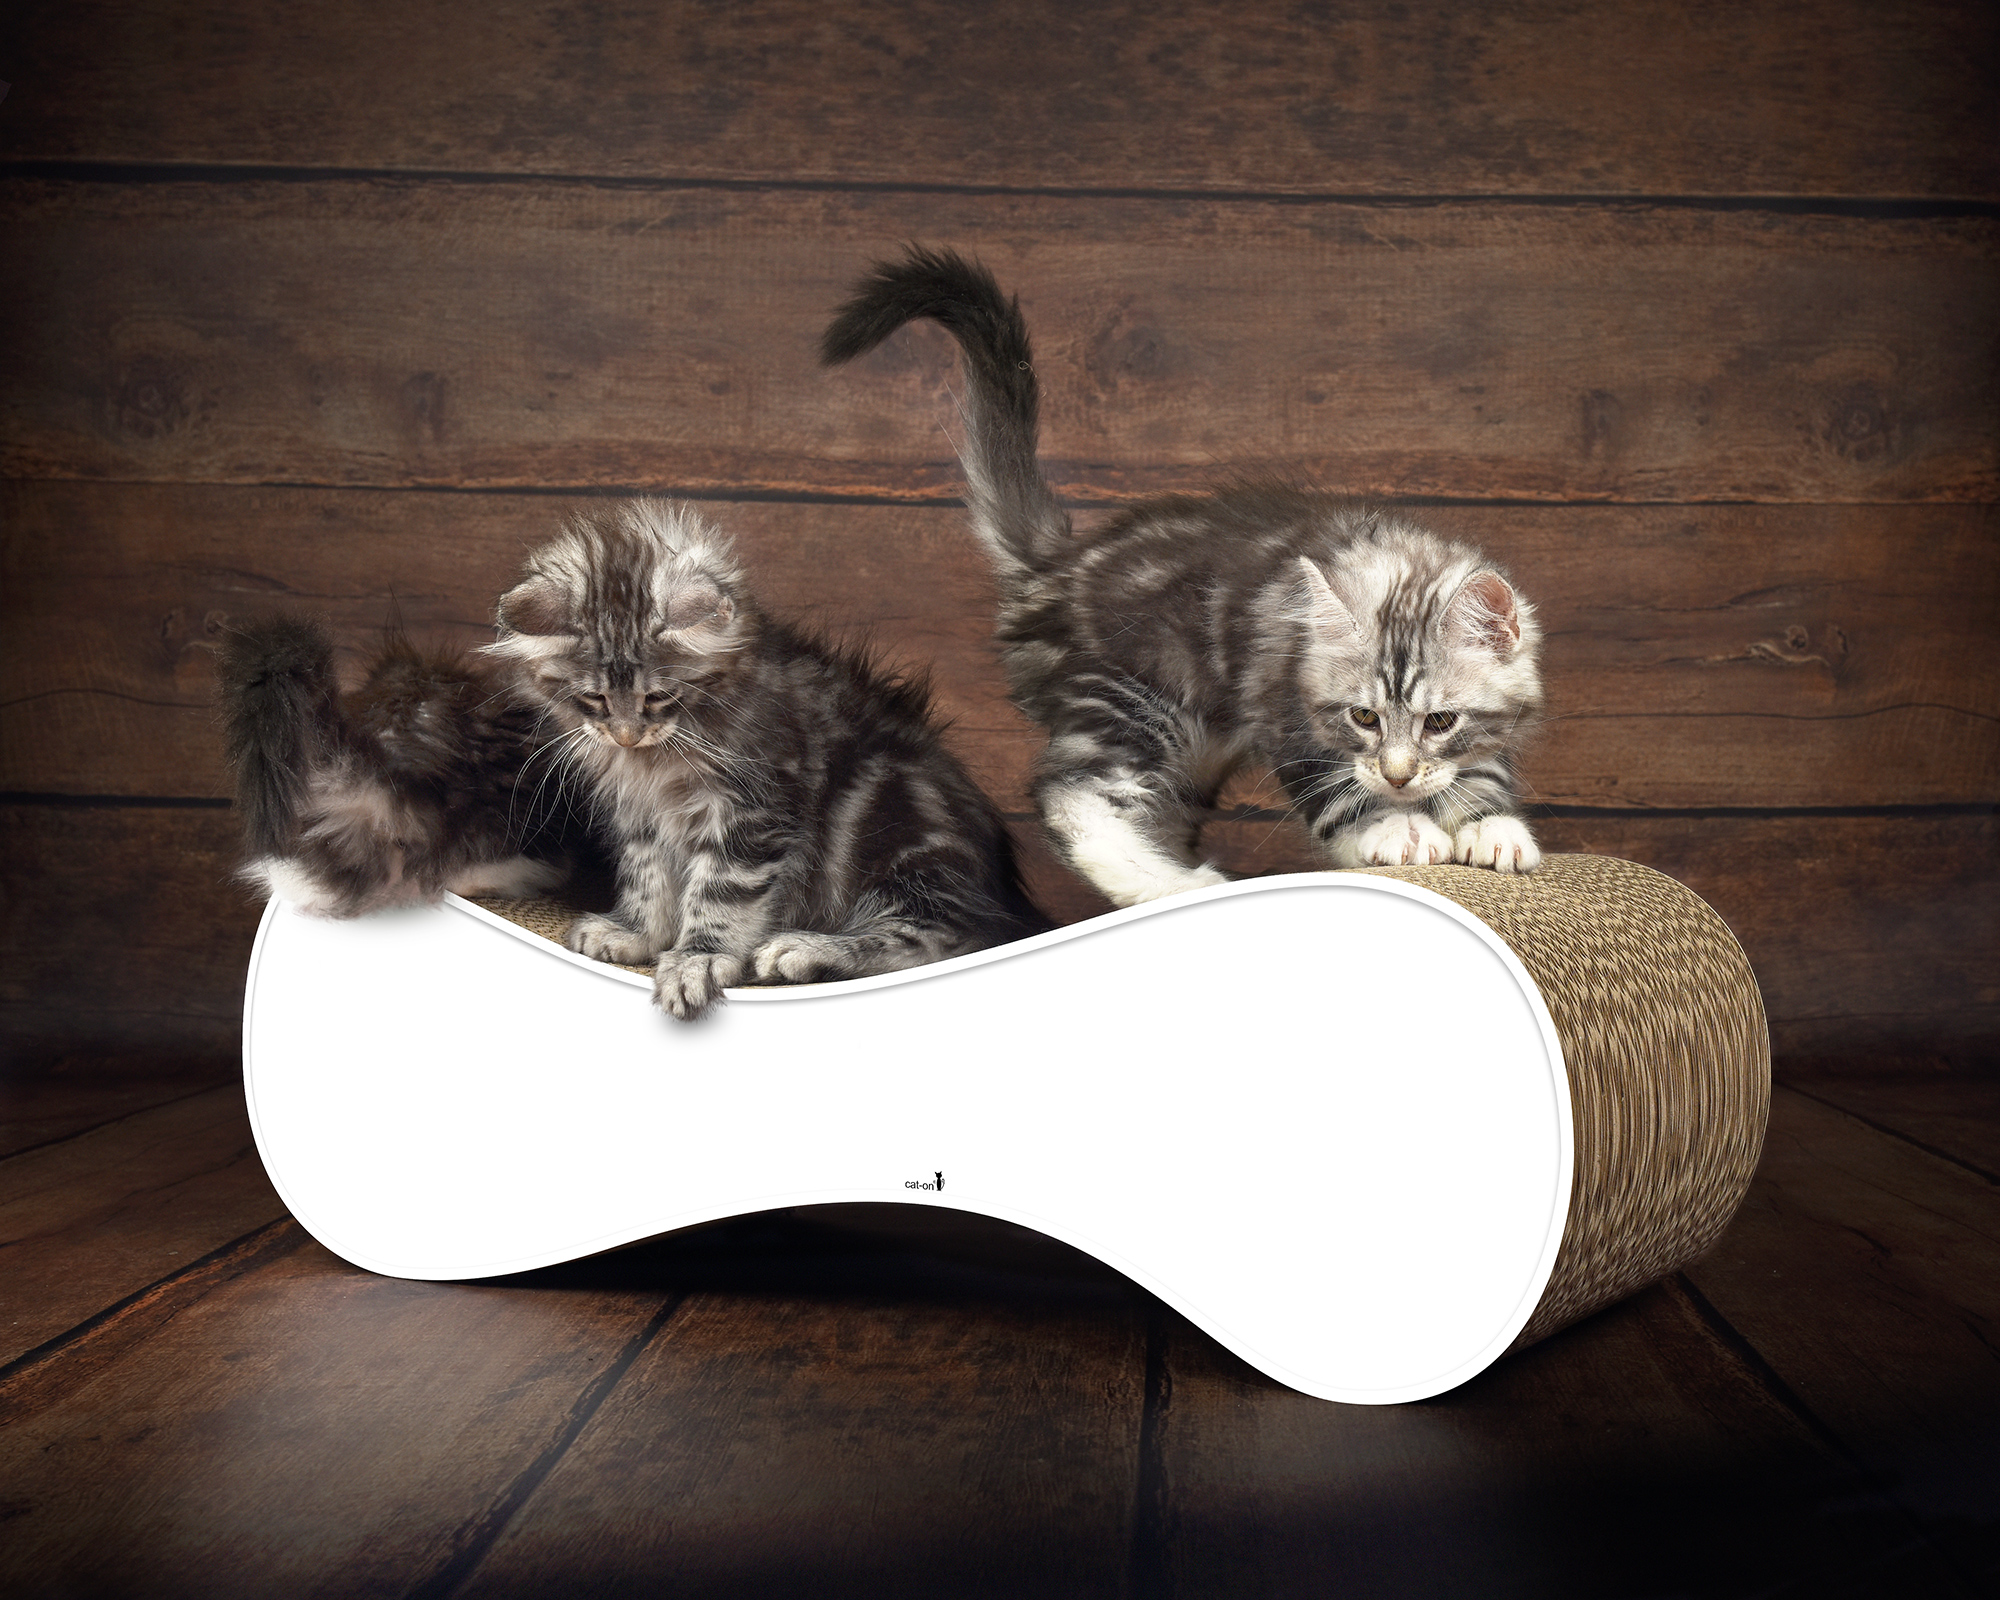 White cardboard scratcher for cats Le Ver - sustainable, sturdy & ergonomic